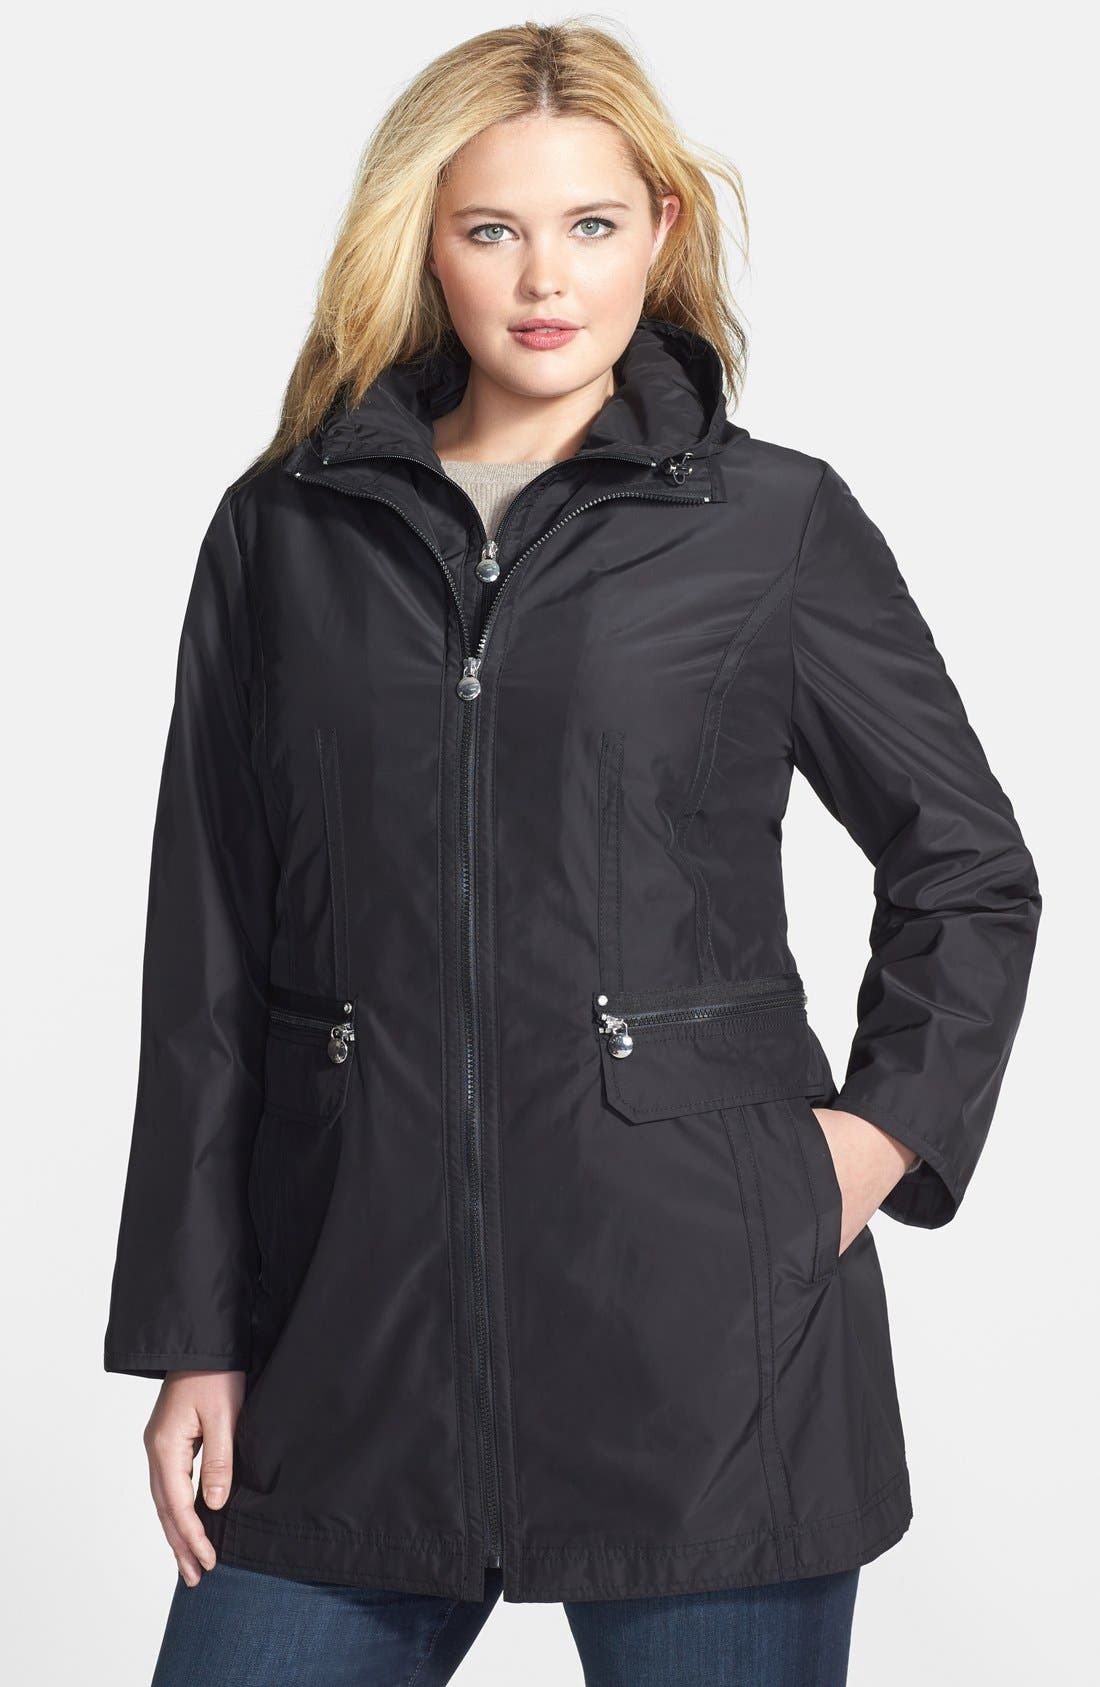 Alternate Image 1 Selected - Laundry by Shelli Segal Packable Coat with Removable Hooded Bib (Plus Size)